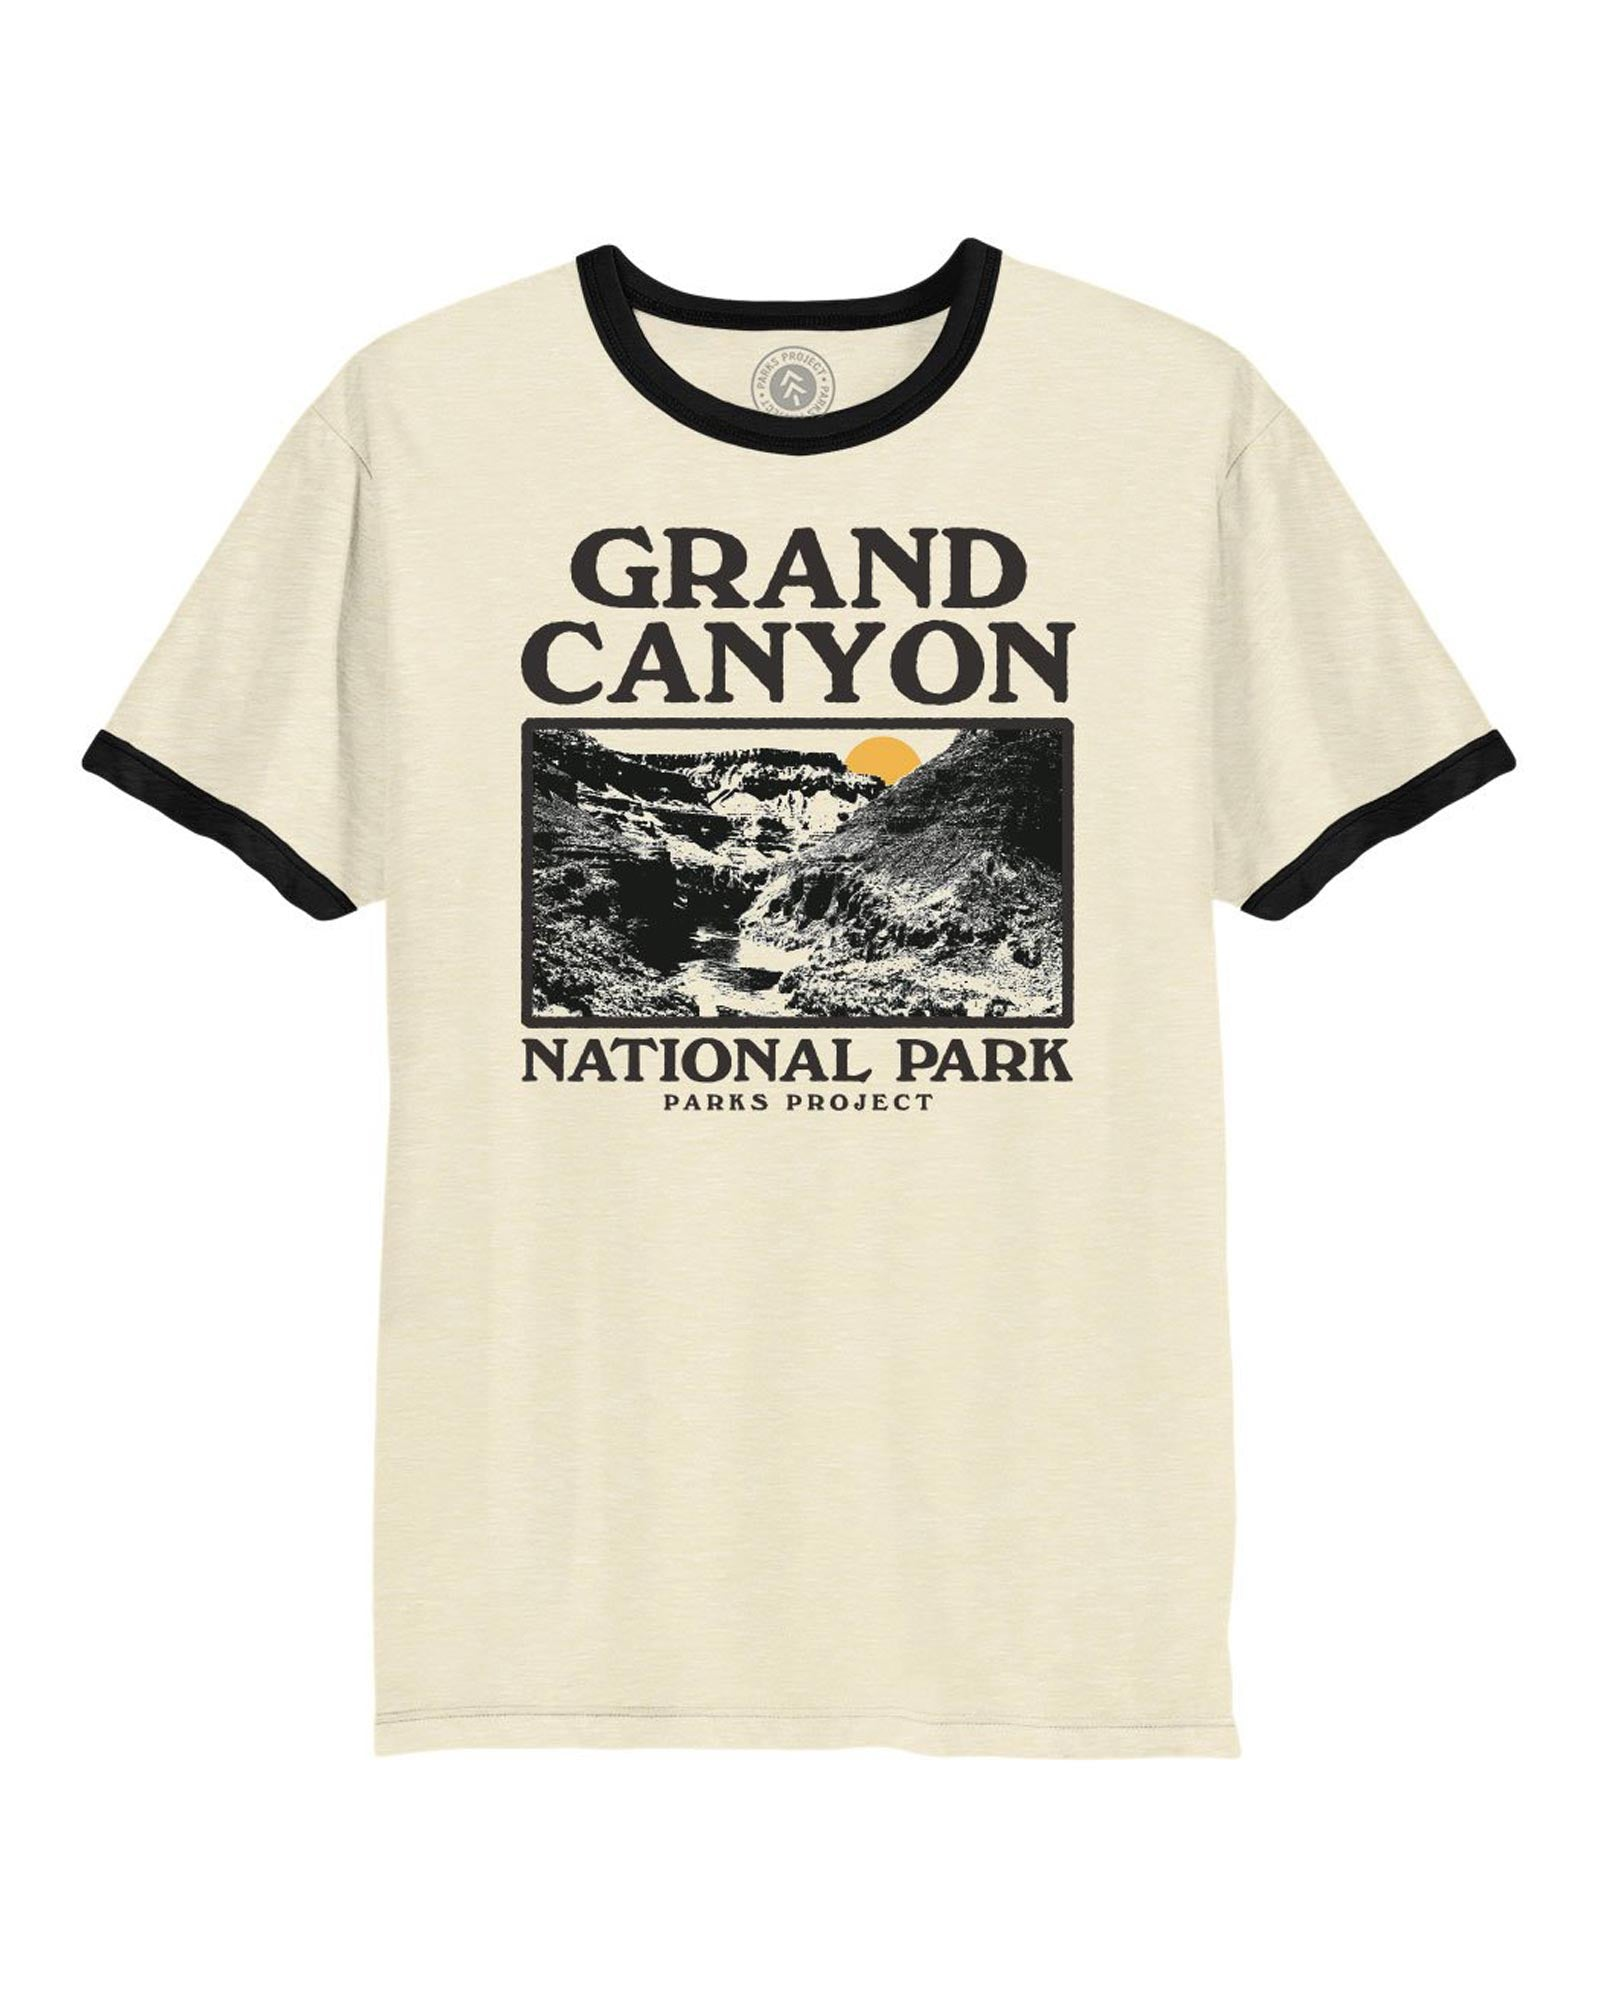 Grand Canyon Photo Ringer Tee | Parks Project | National Park Vintage Ringers